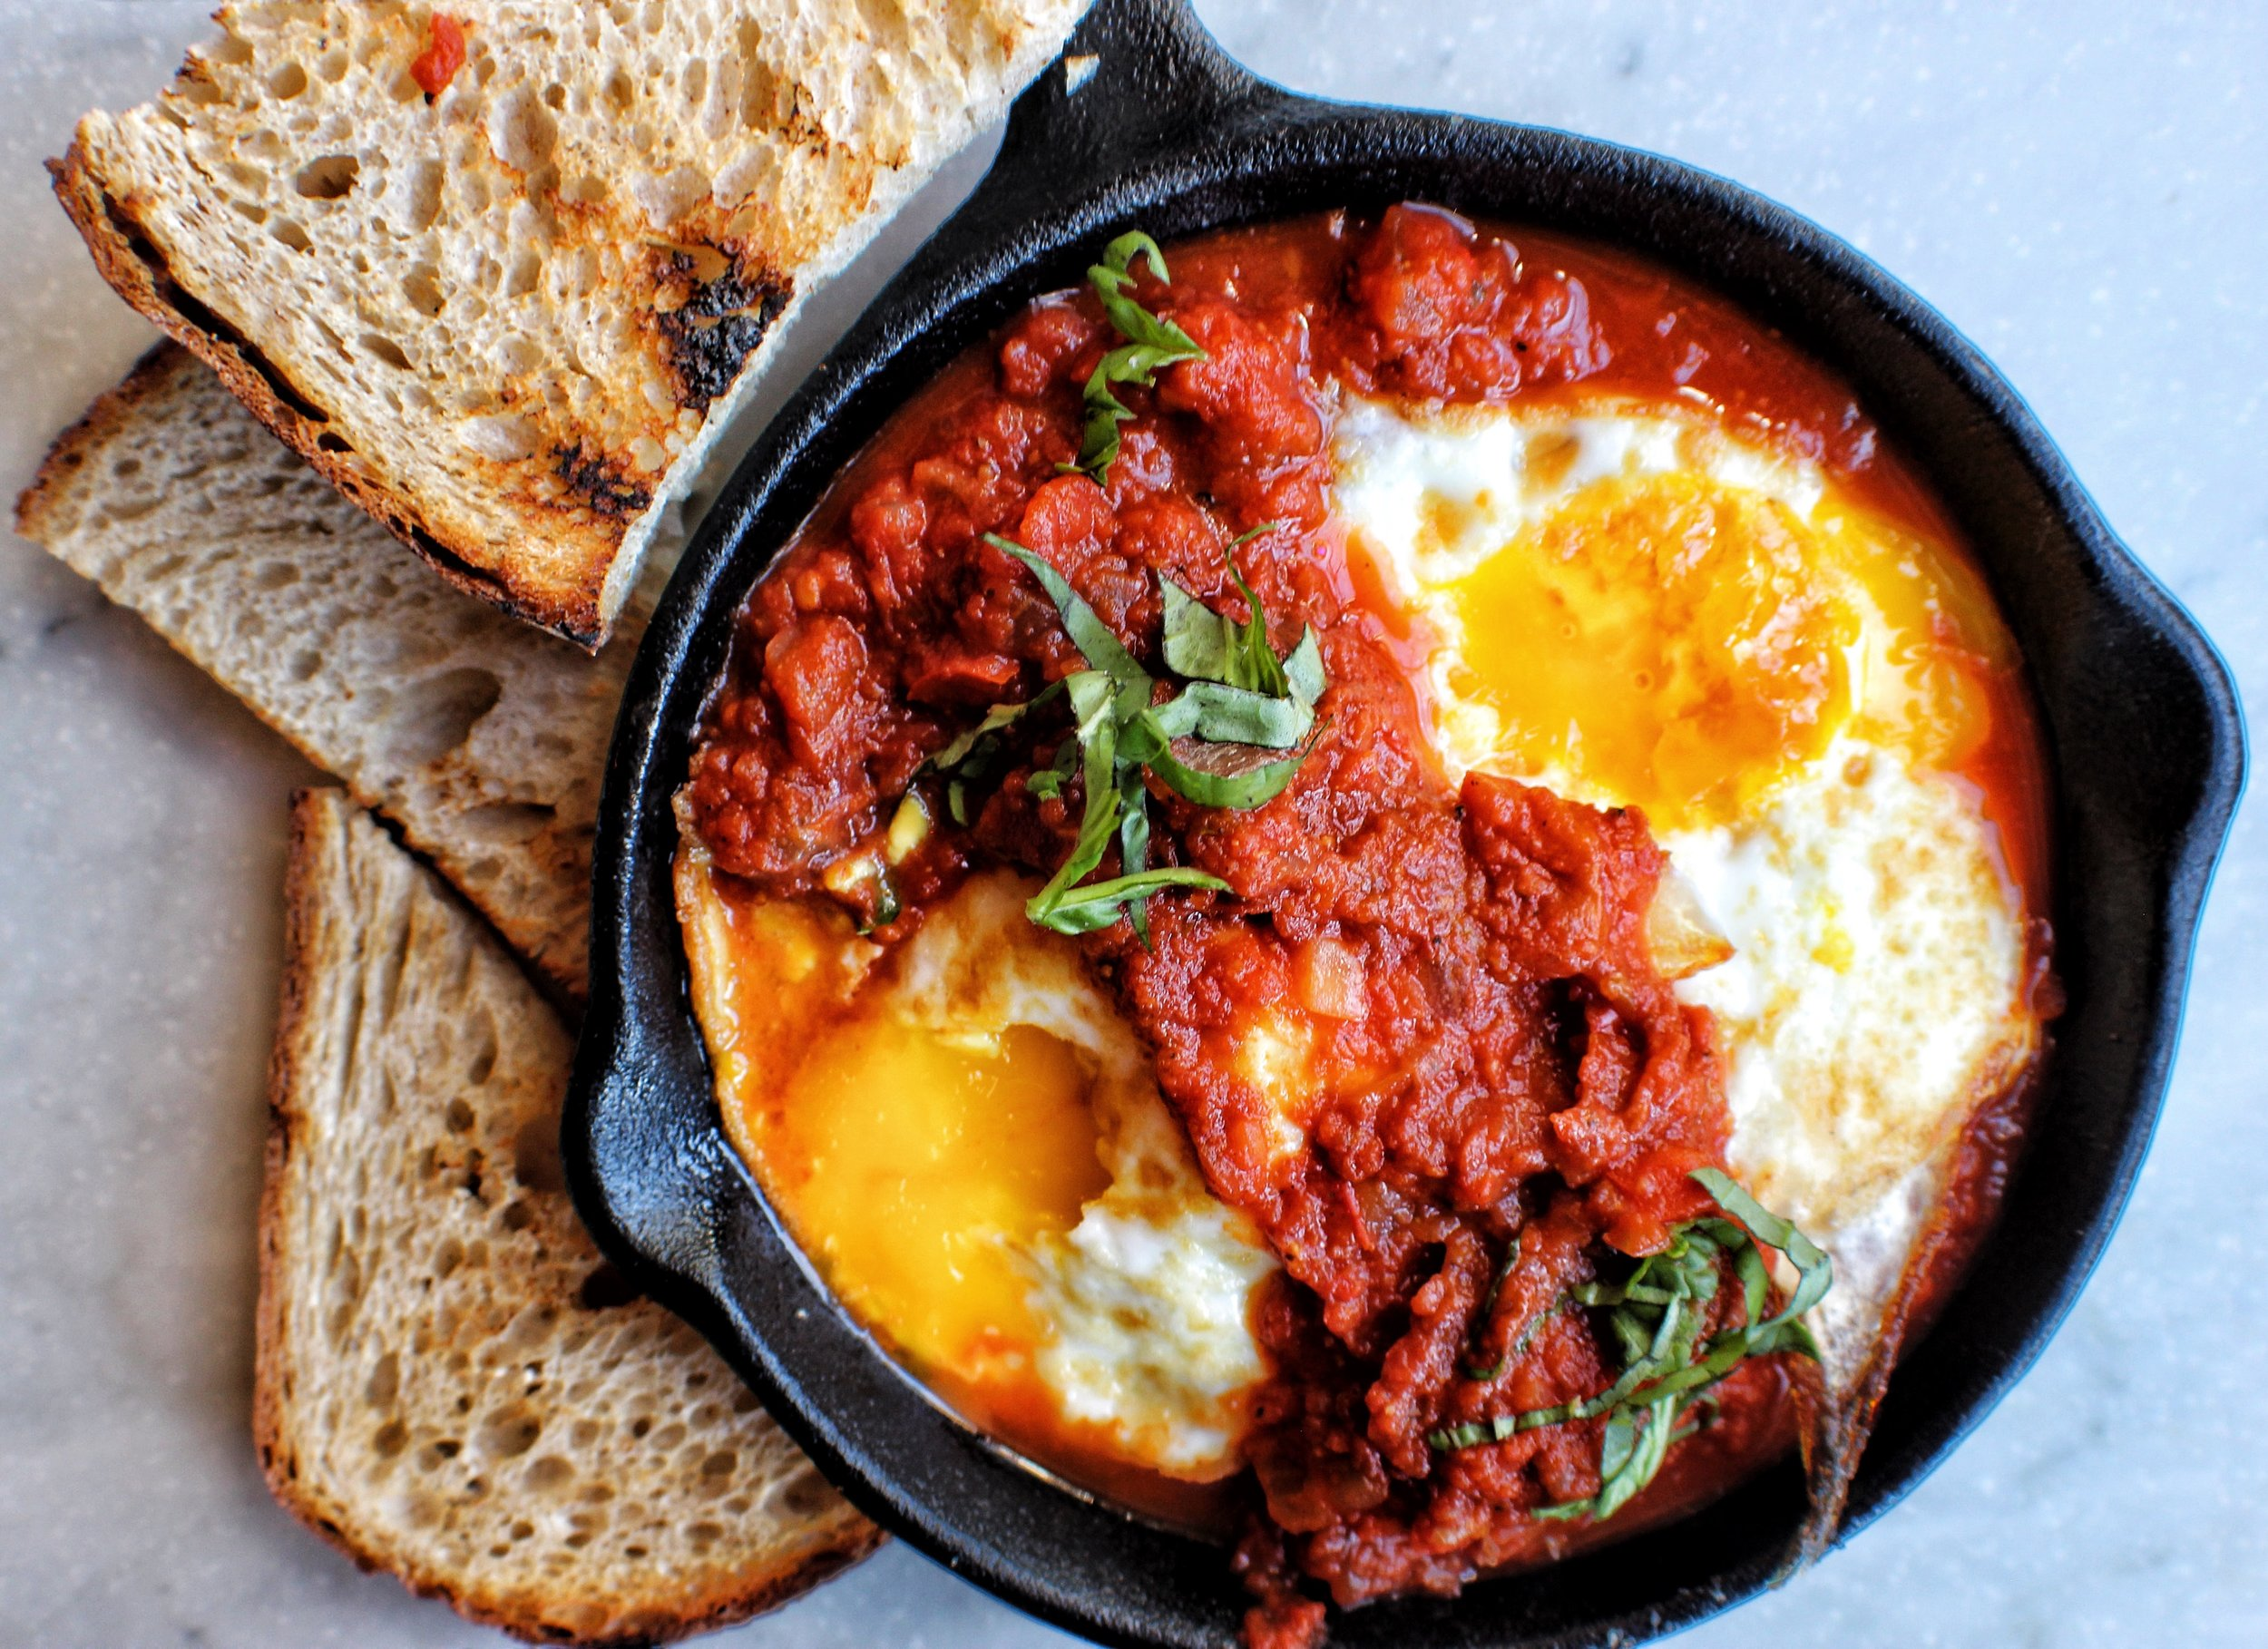 Mediterranean eggs -  two eggs, homemade tomato, pepper & onion sauce with Mediterranean spices & grilled bread